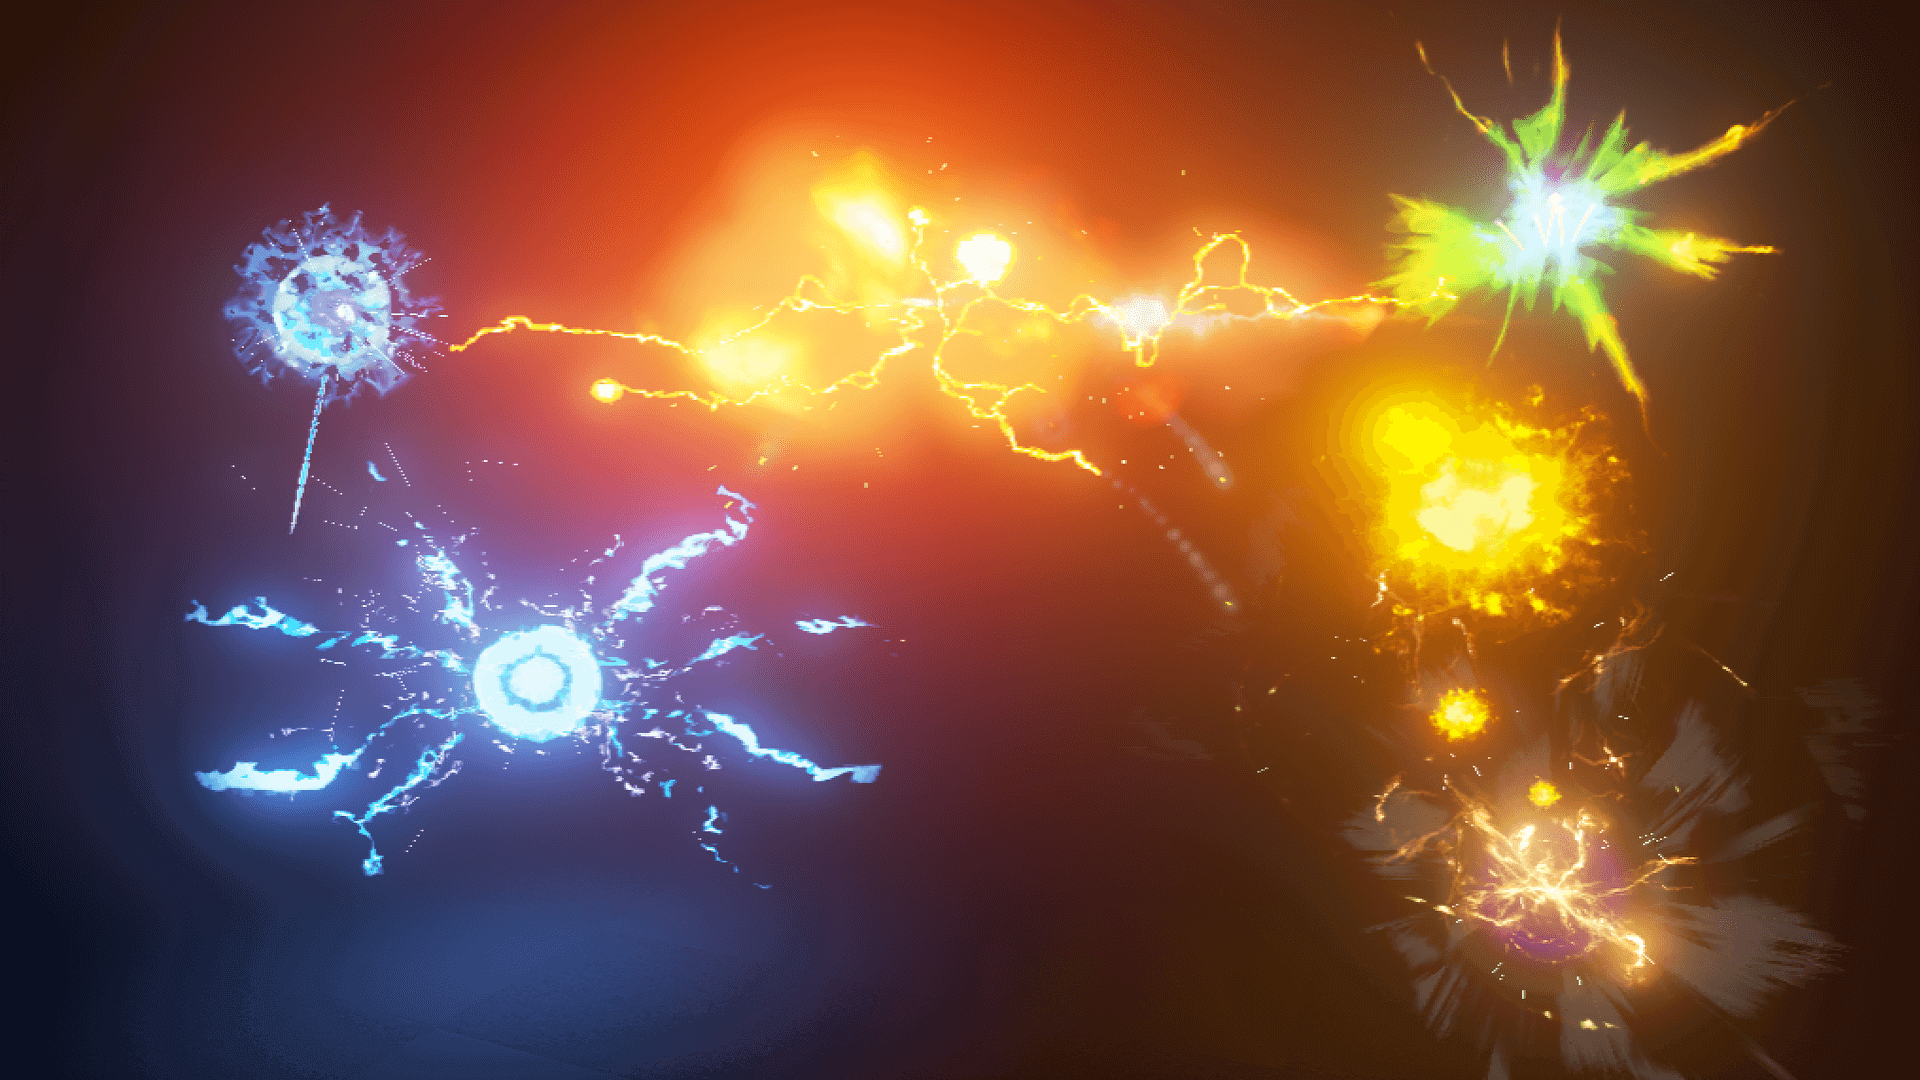 Advanced Magic FX 08 by Kakky in Visual Effects - UE4 Marketplace